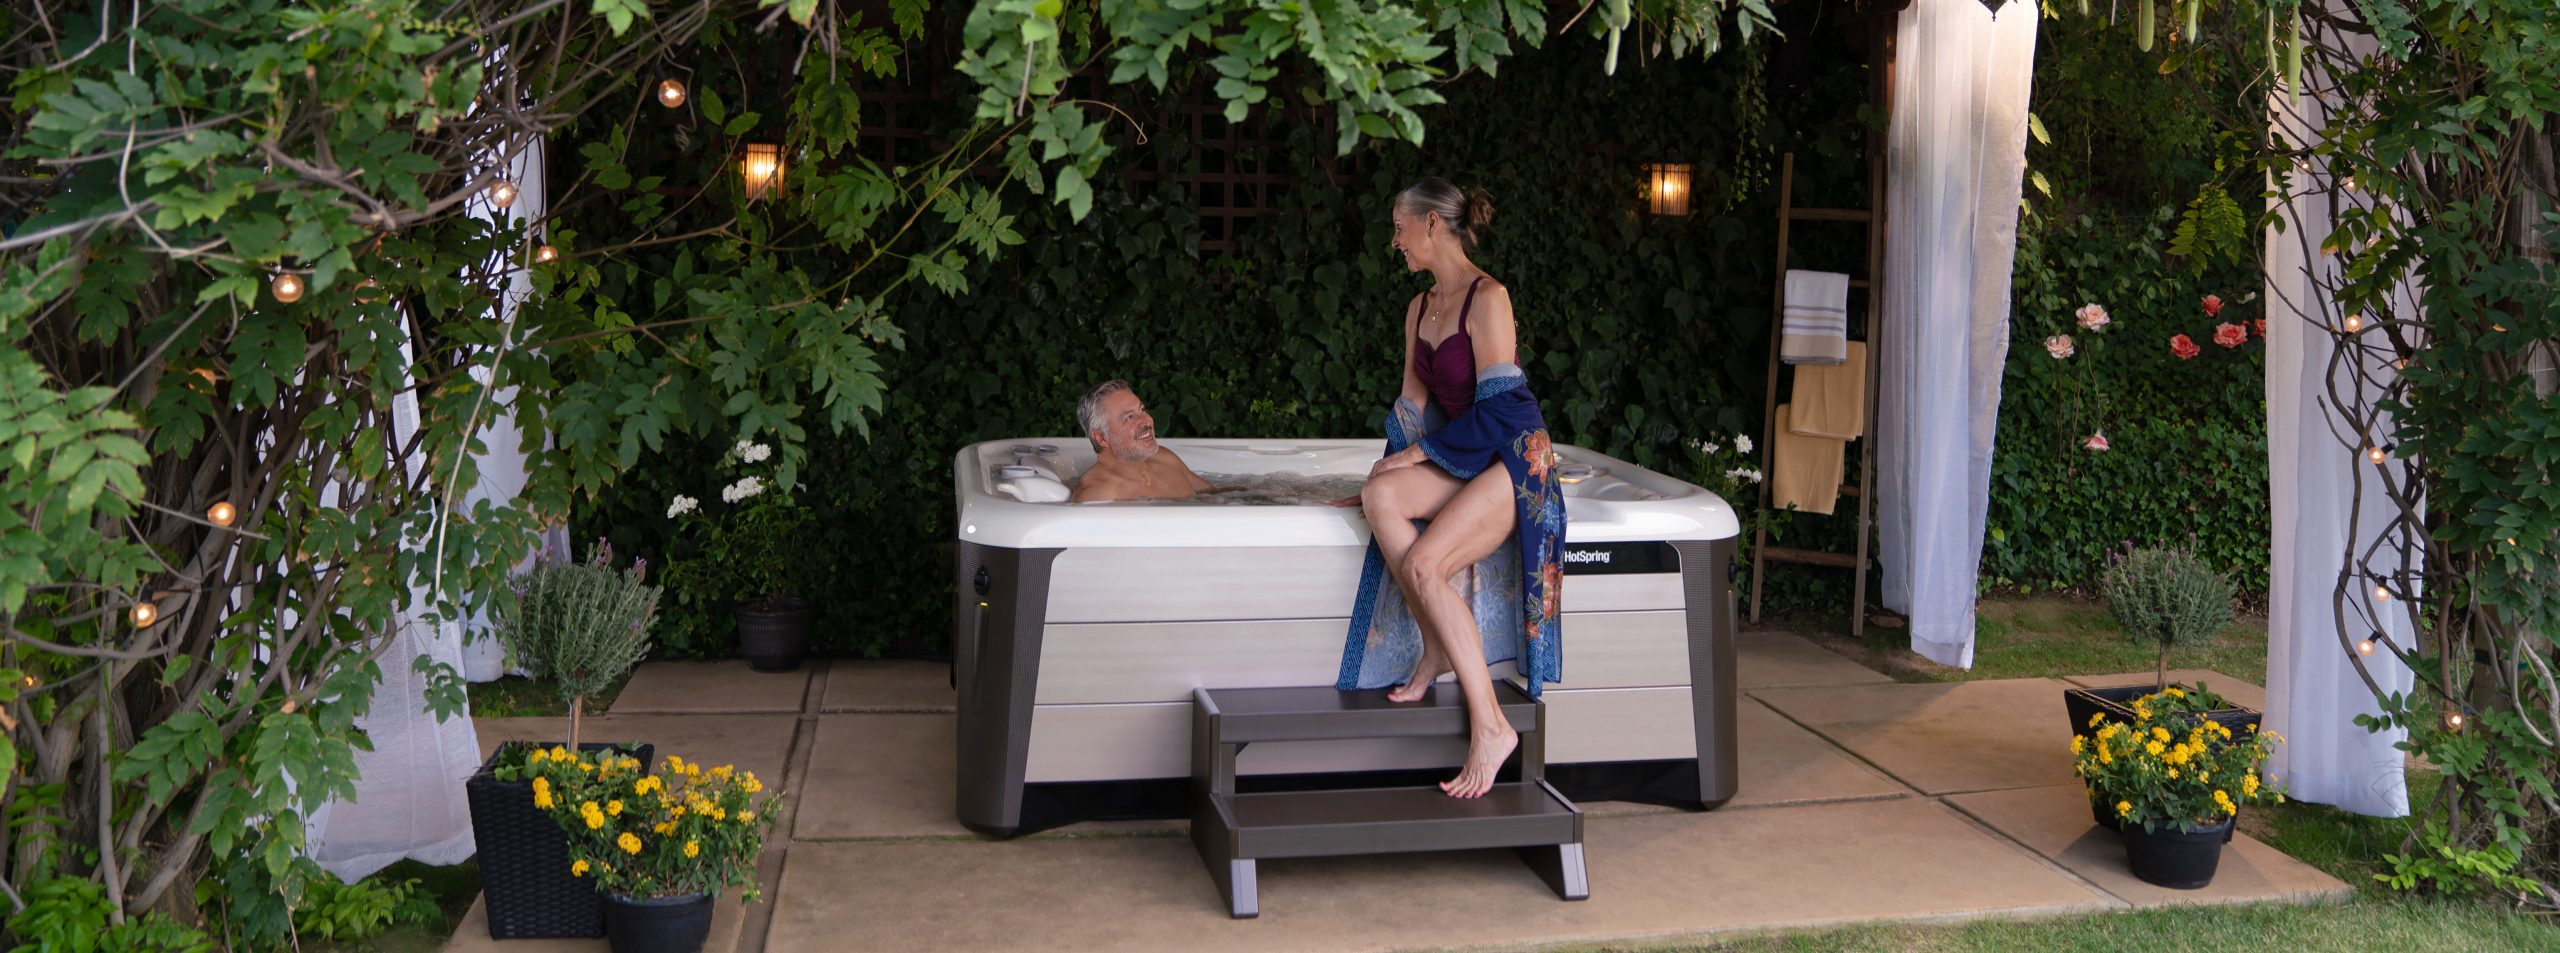 How A Hot Tub Helps You Do More Of What You Love